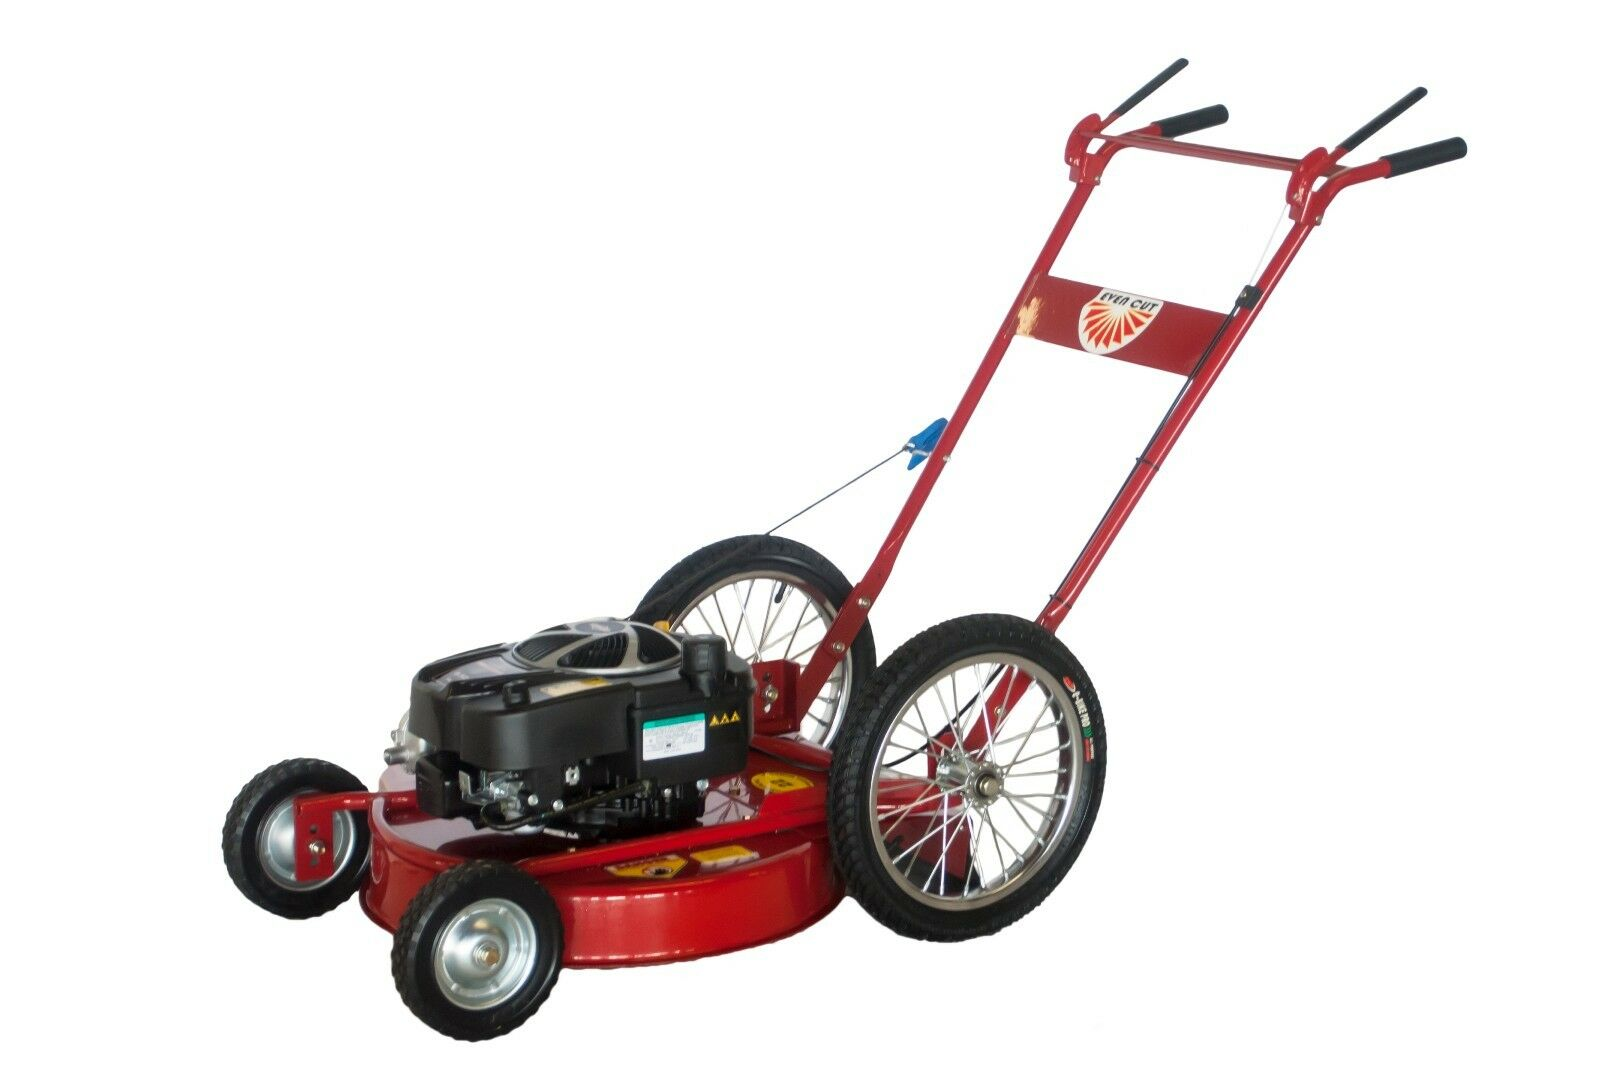 commercial walk behind lawn mowers. picture 1 of 11 commercial walk behind lawn mowers e